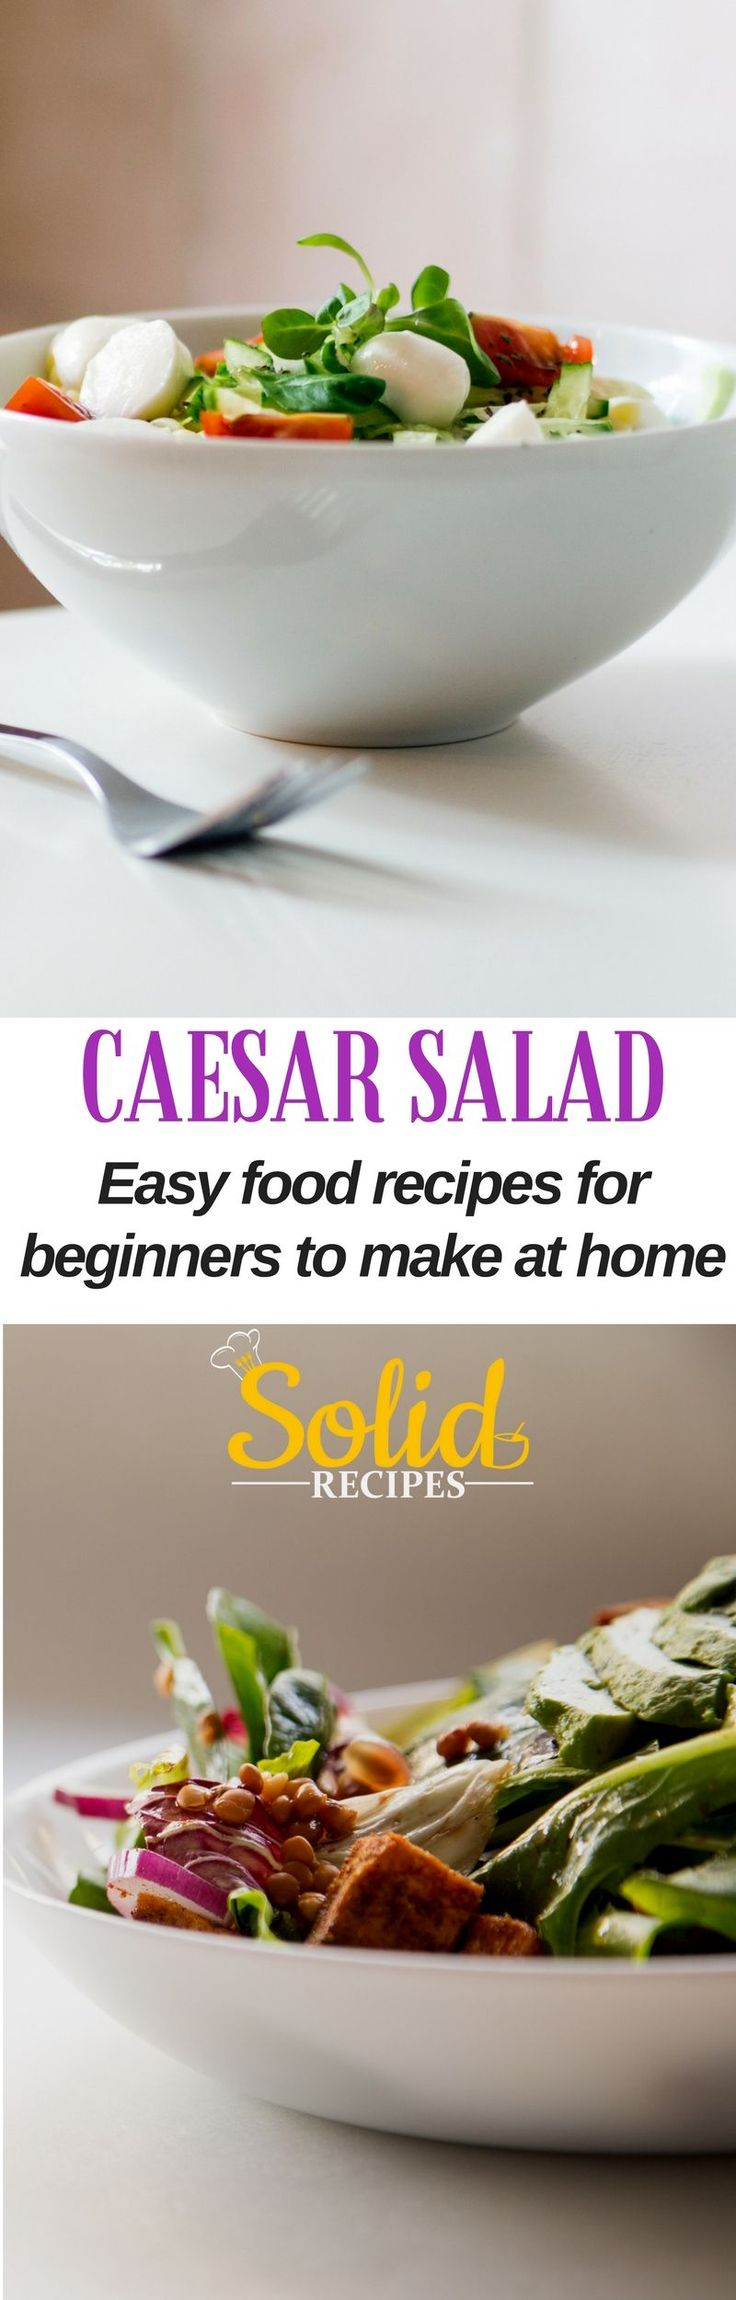 CAESAR SALAD – easy food recipes for beginners to make at home Not always the photos matched the recipe. Caesar salad dressing | Caesar salad recipe | Caesar salad dressing recipe | Caesar salad dressing homemade | Caesar salad dressing no anchovies